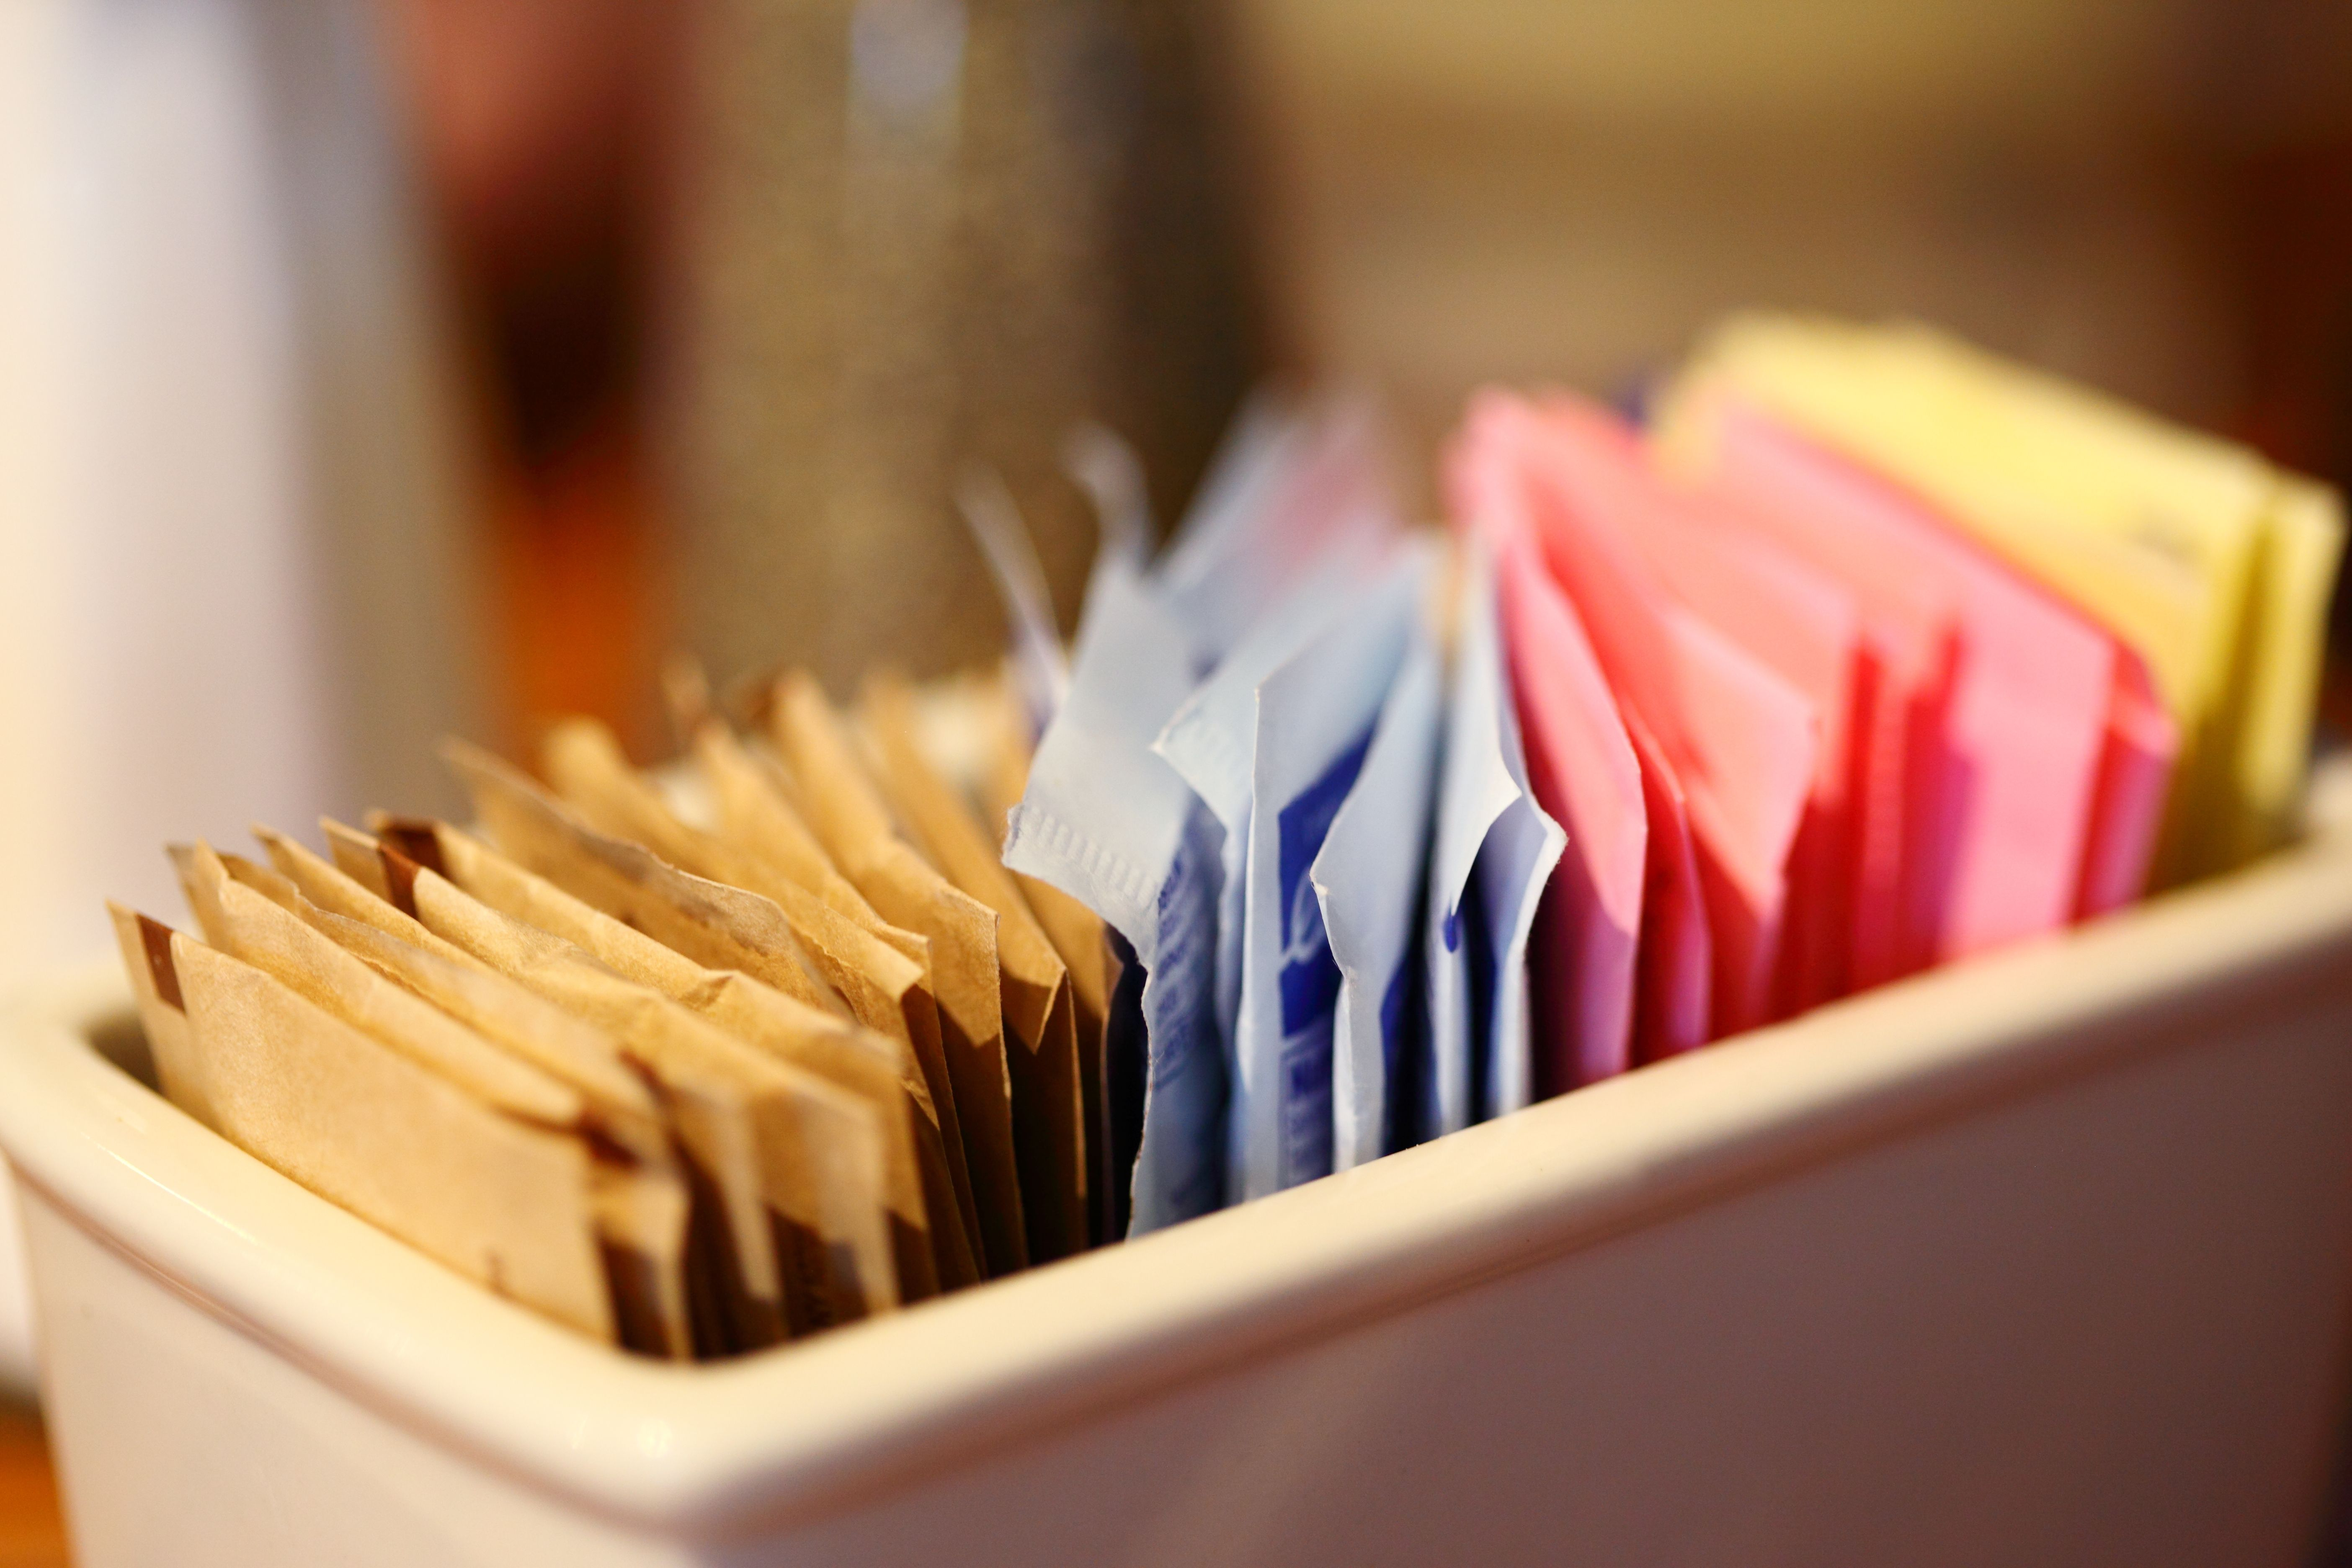 Sugar and sweetener packets in a container